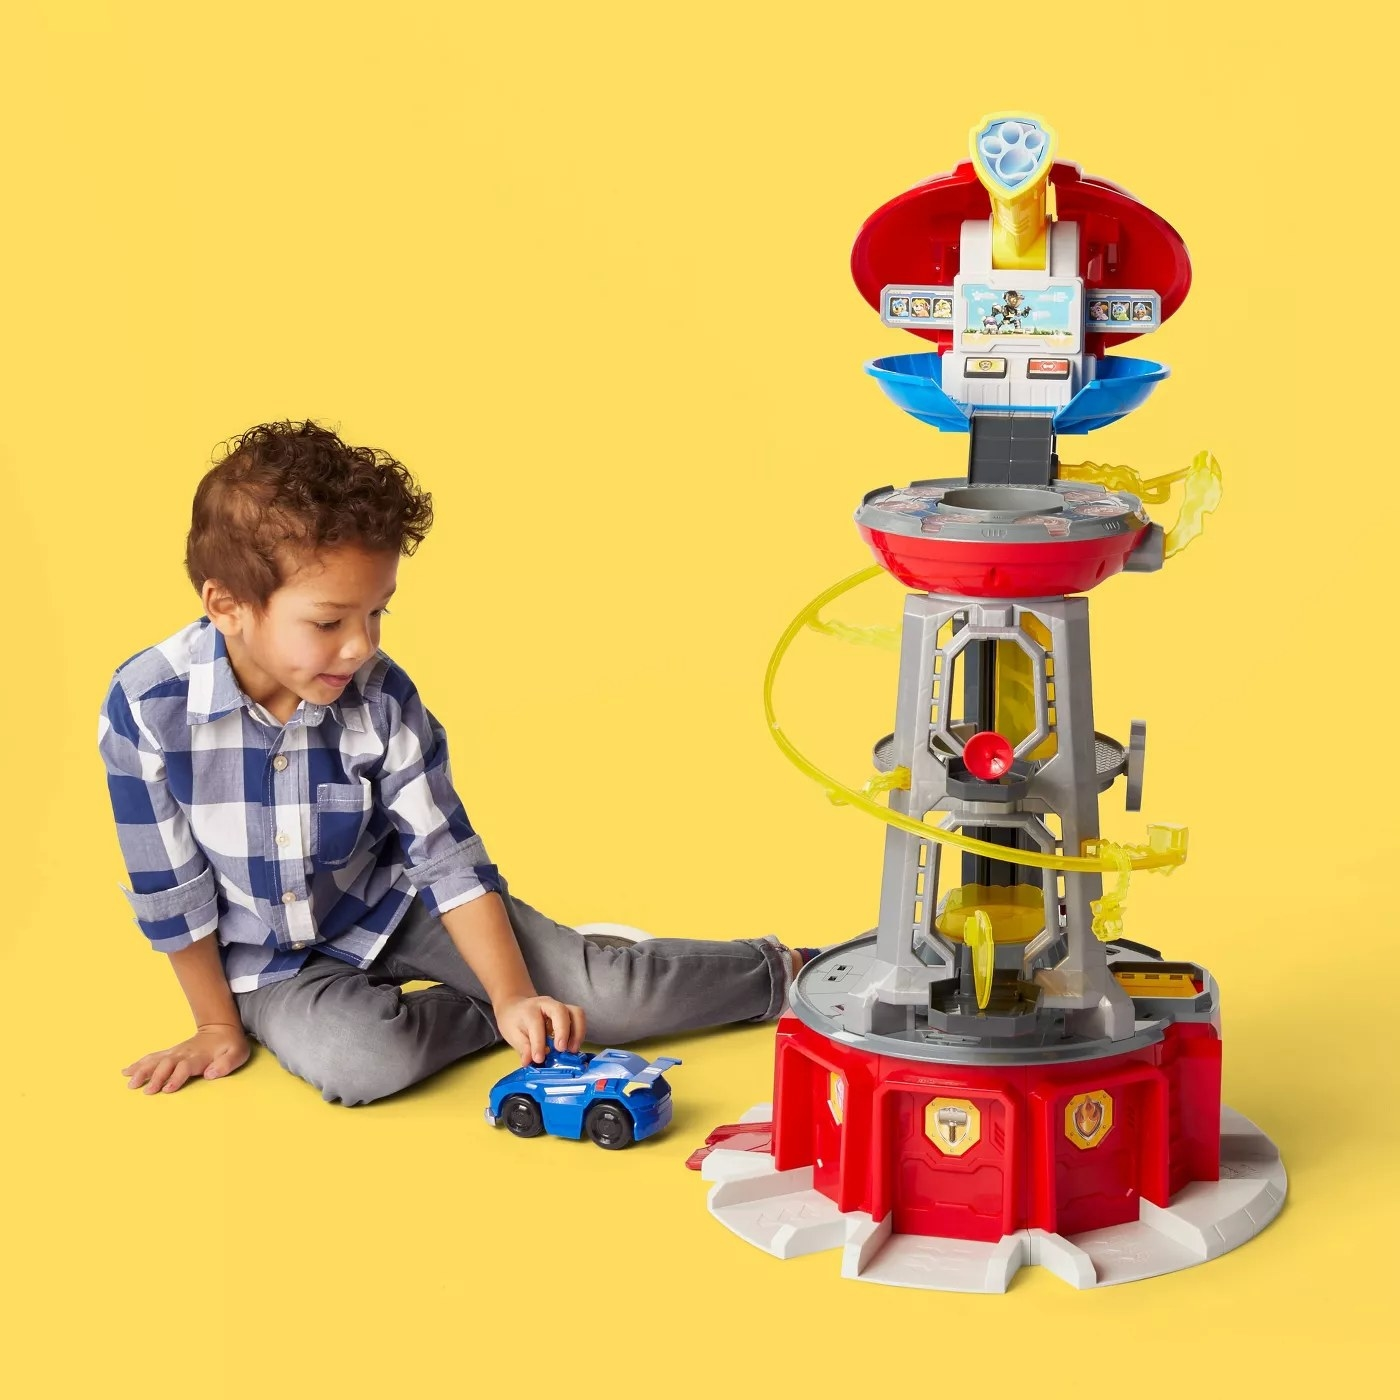 A child playing with a car next to the Paw Patrol lookout tower